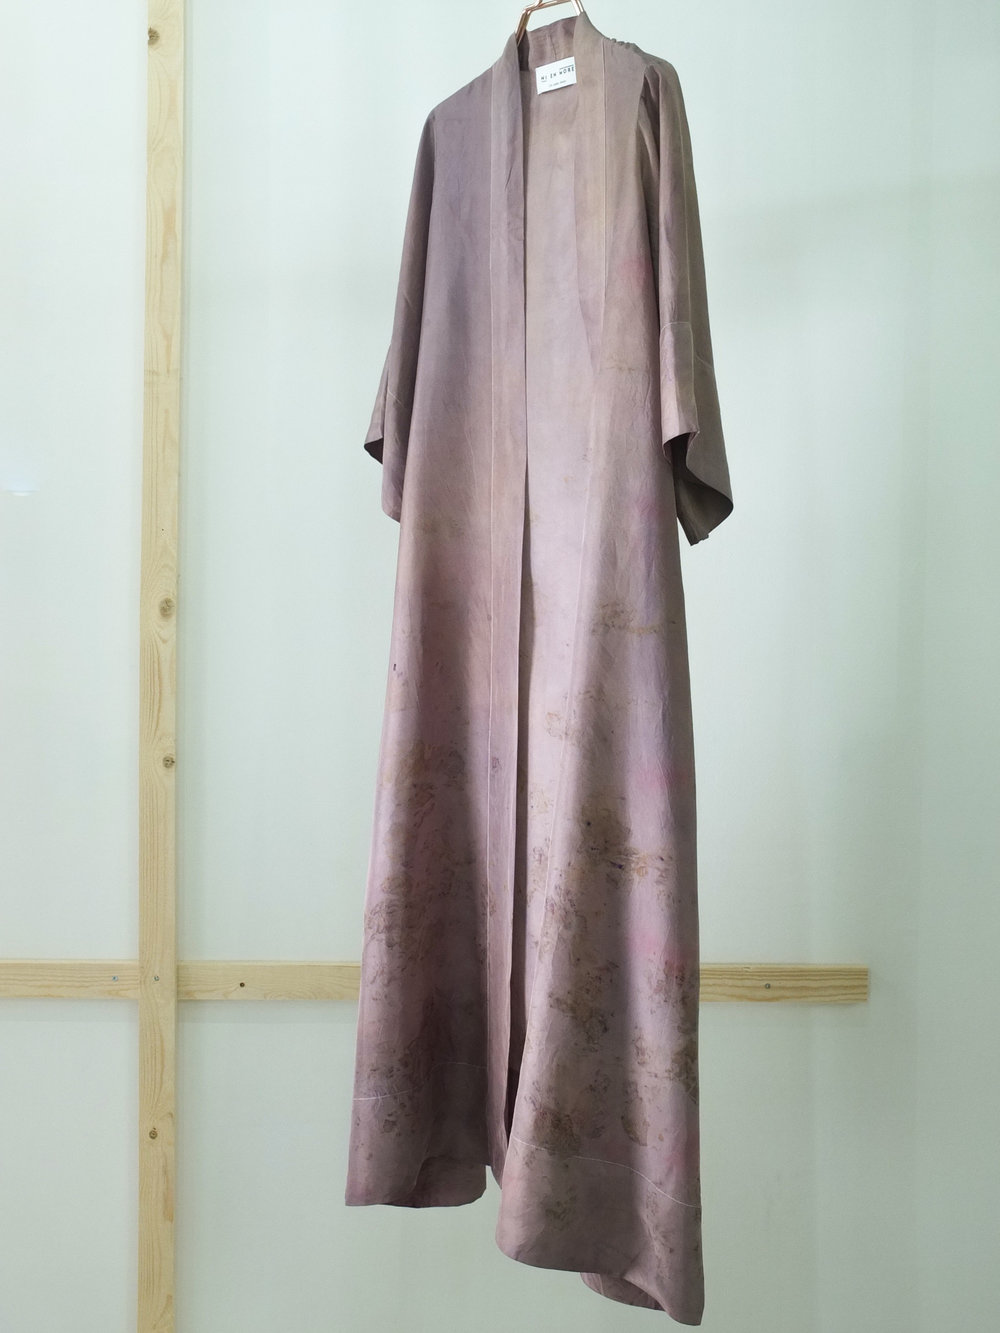 Robe 32, front - side u belte, str M.JPG